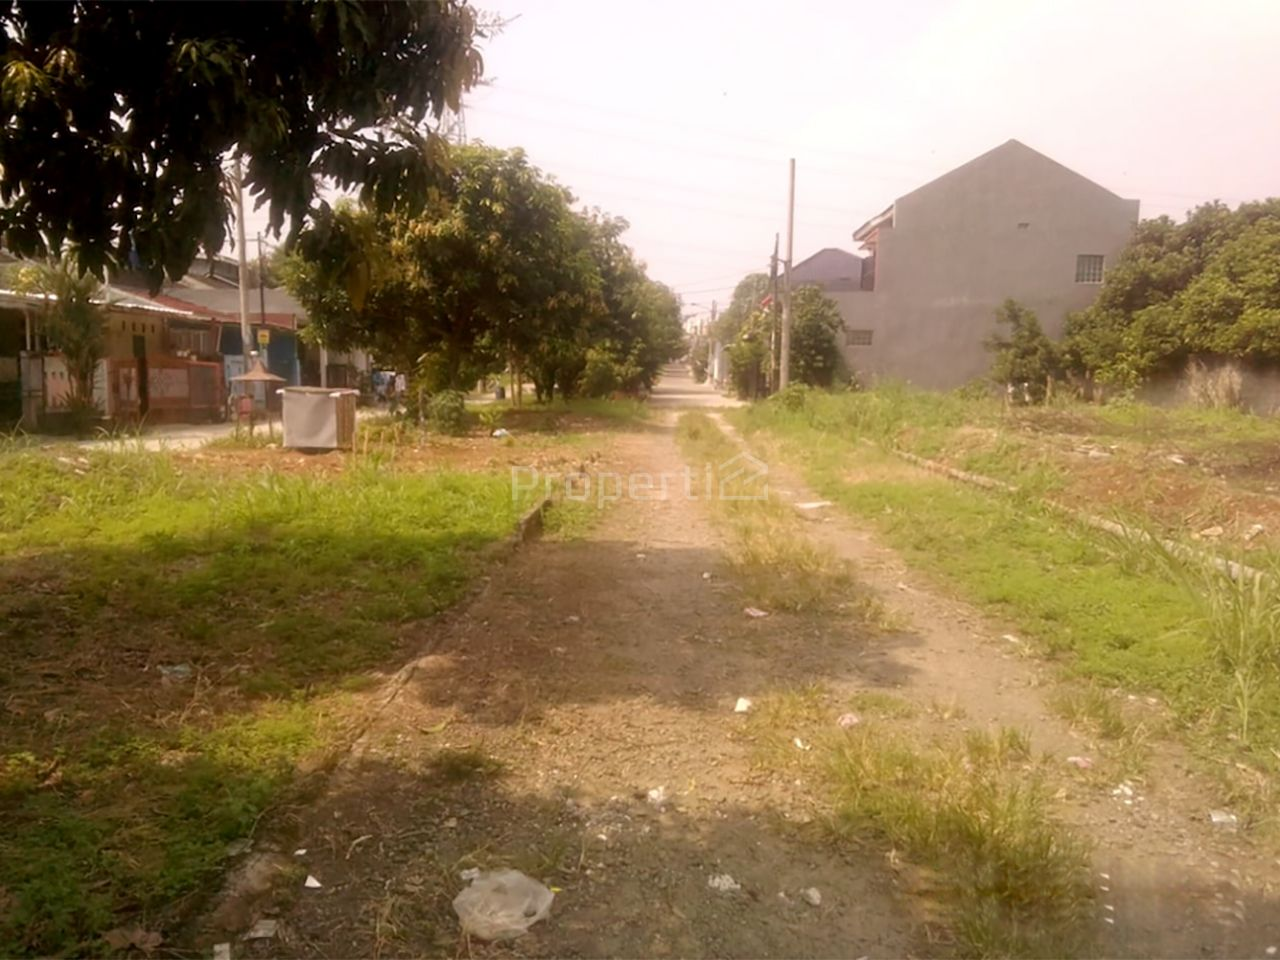 Land for Housing Allocation in West Pamulang, Jawa Barat